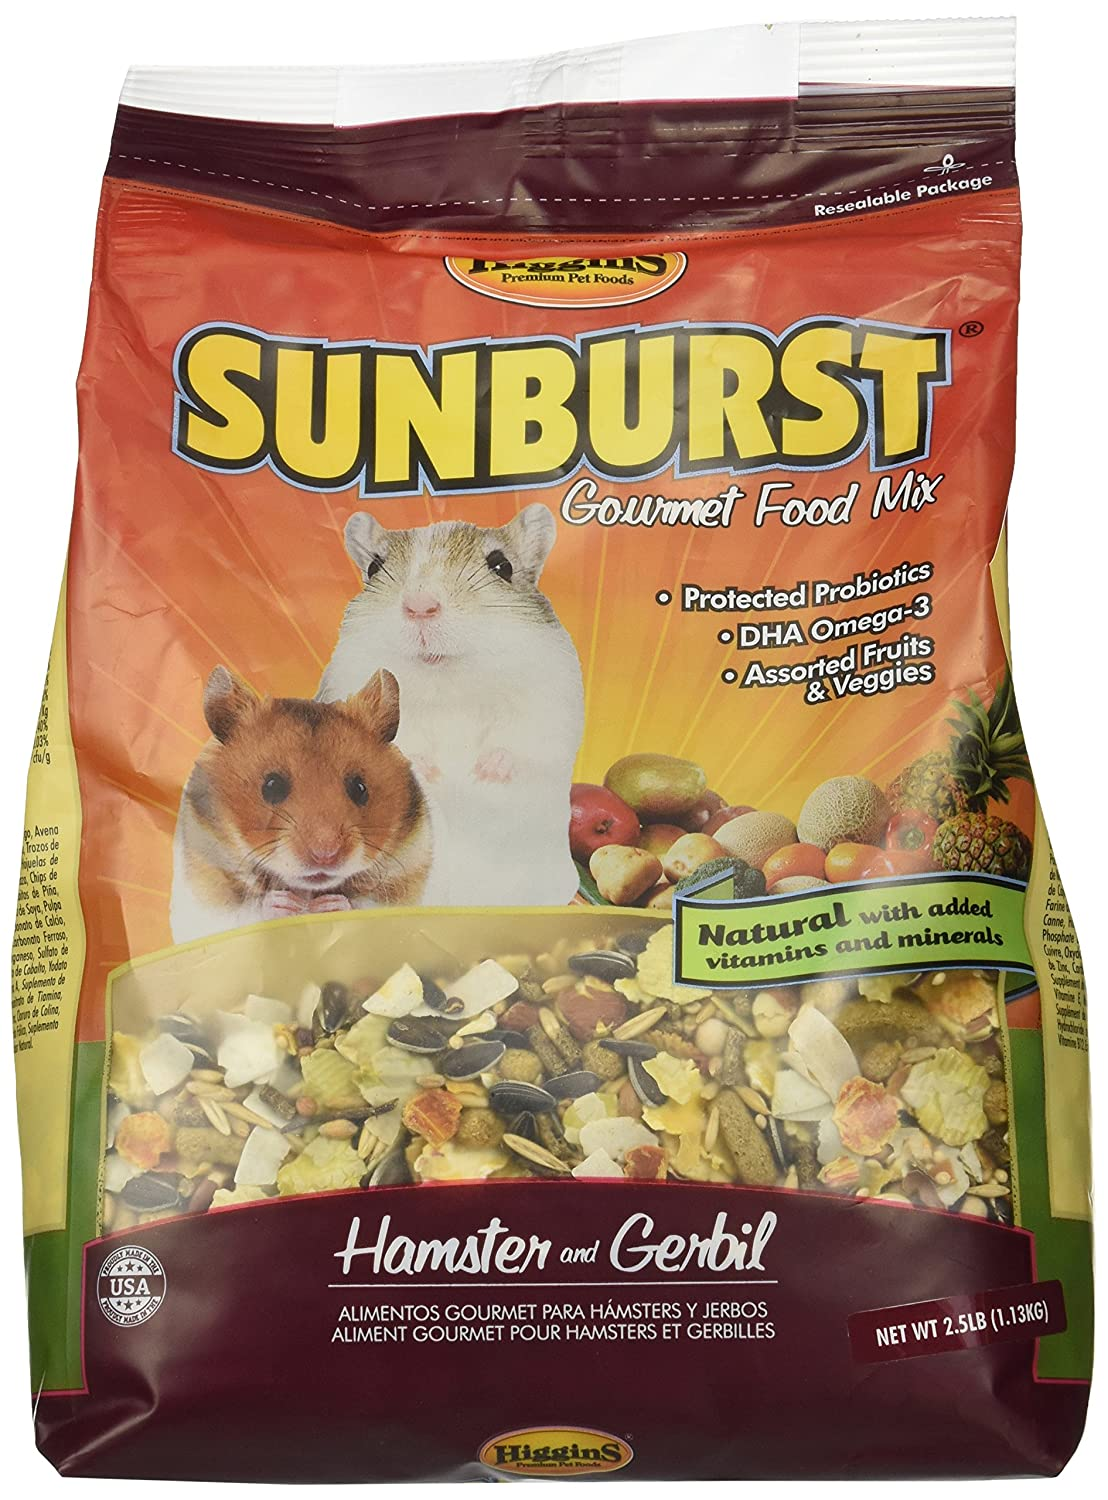 Higgins Sunburst Gourmet Food Mix for Hamsters & Gerbils 56303